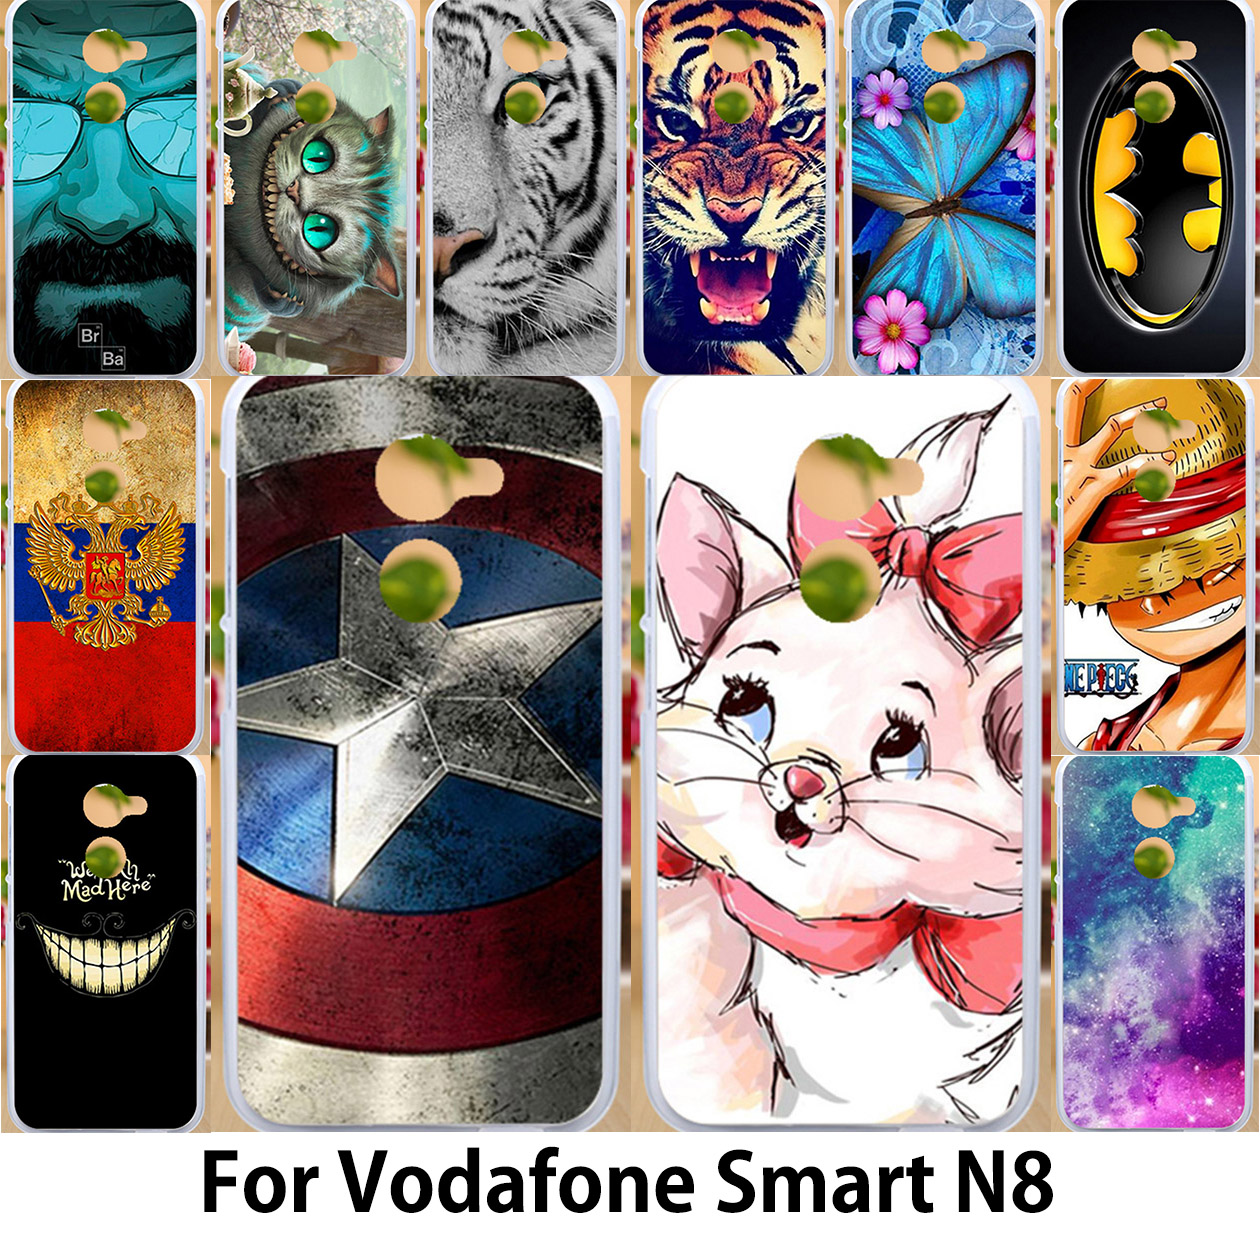 Galleria fotografica AKABEILA Case For Vodafone Smart N8 VFD610 Cases Silicone Soft TPU <font><b>Covers</b></font> 5.0 inch Pig Captain American Patterns Shells